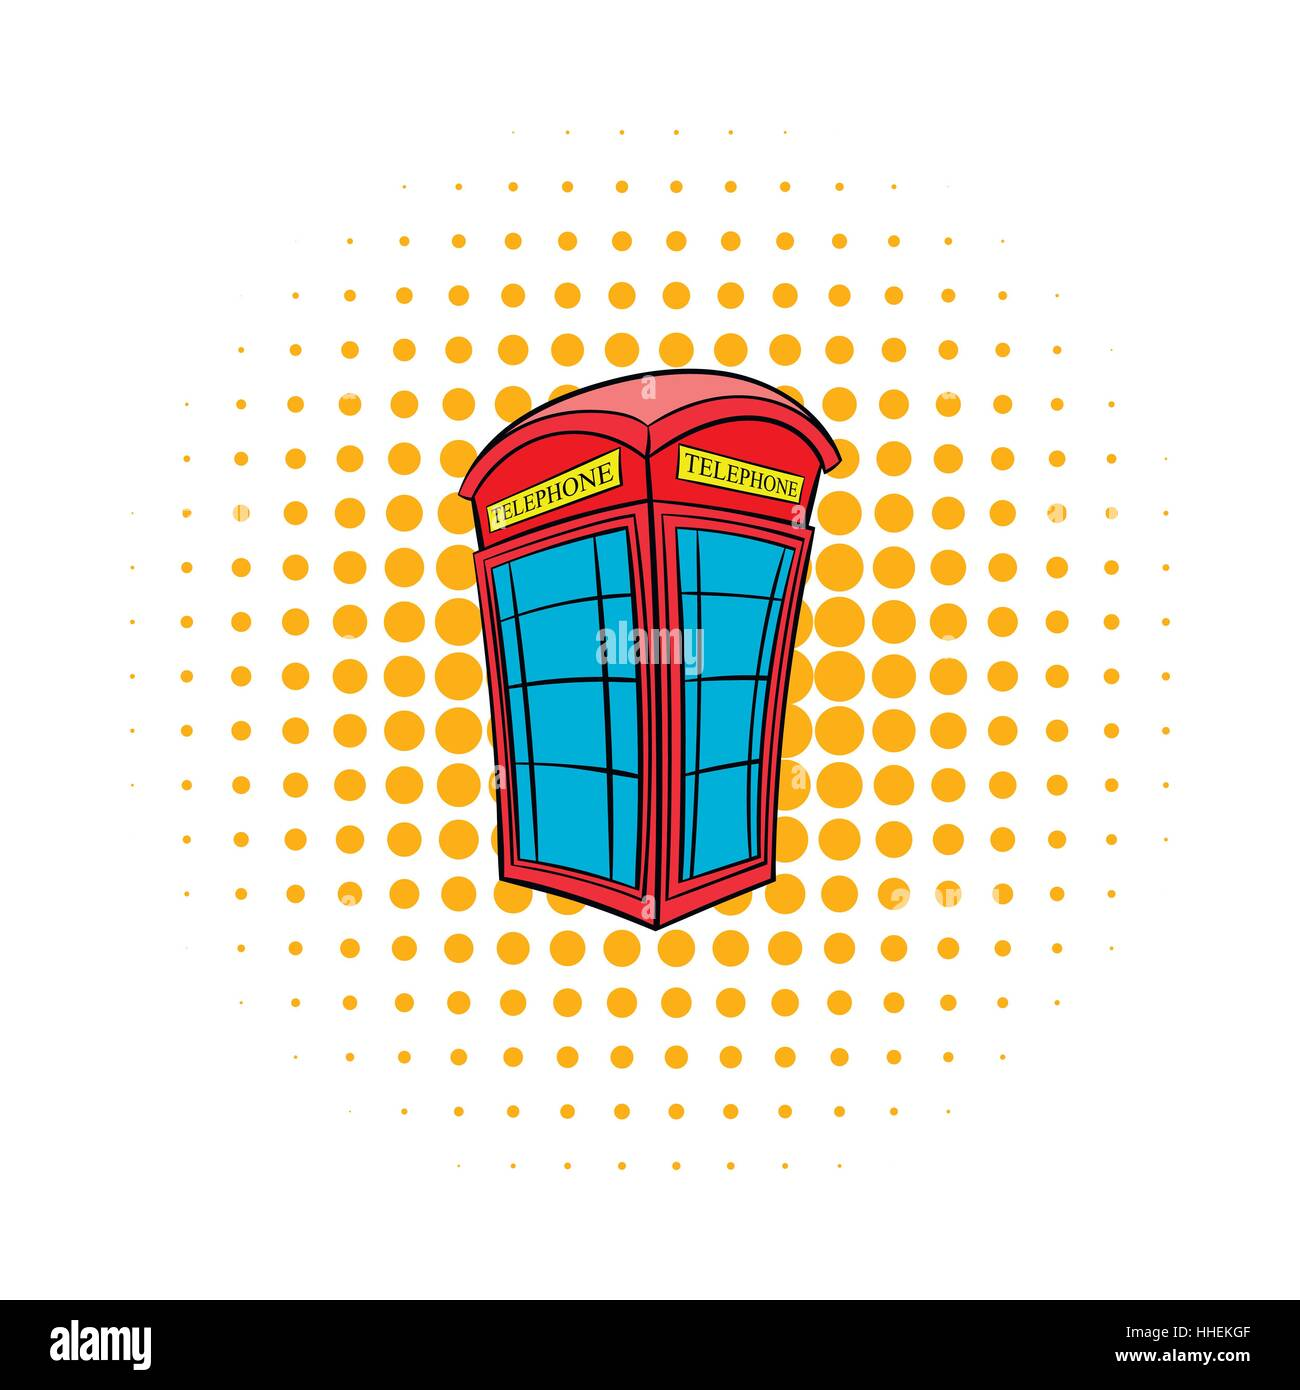 British red phone booth icon, comics style - Stock Image